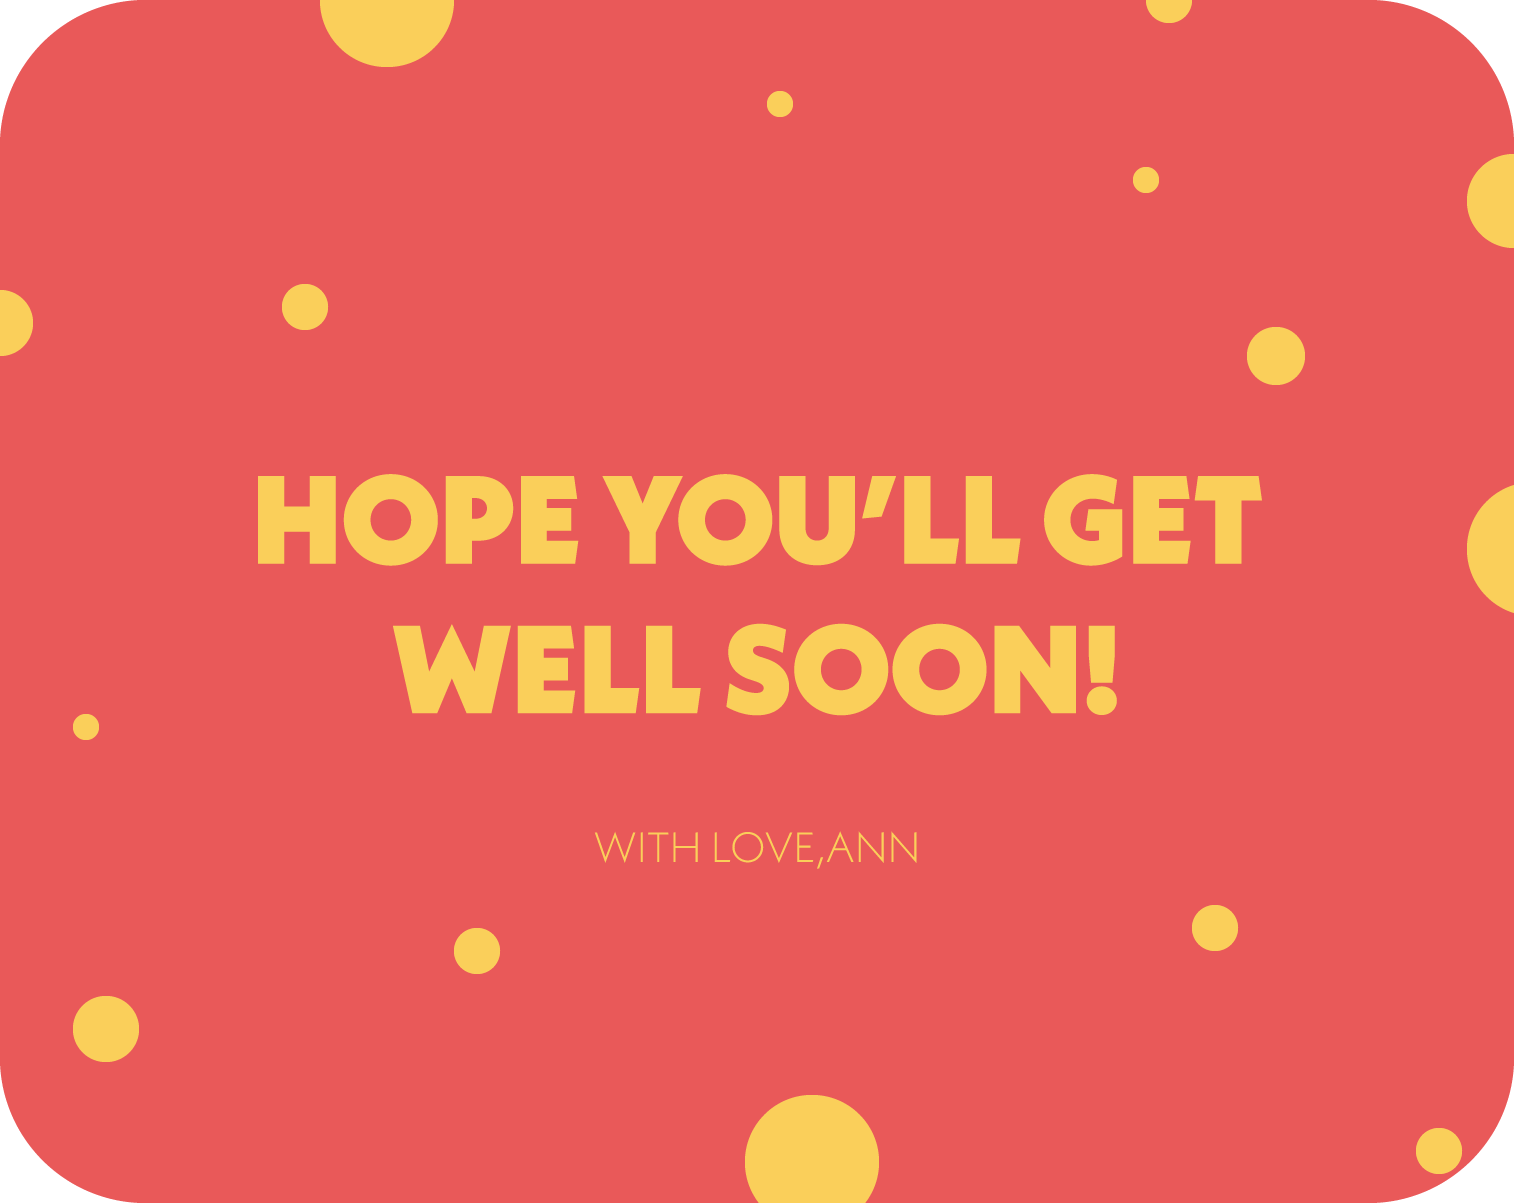 hope you will get well soon text on a card template design